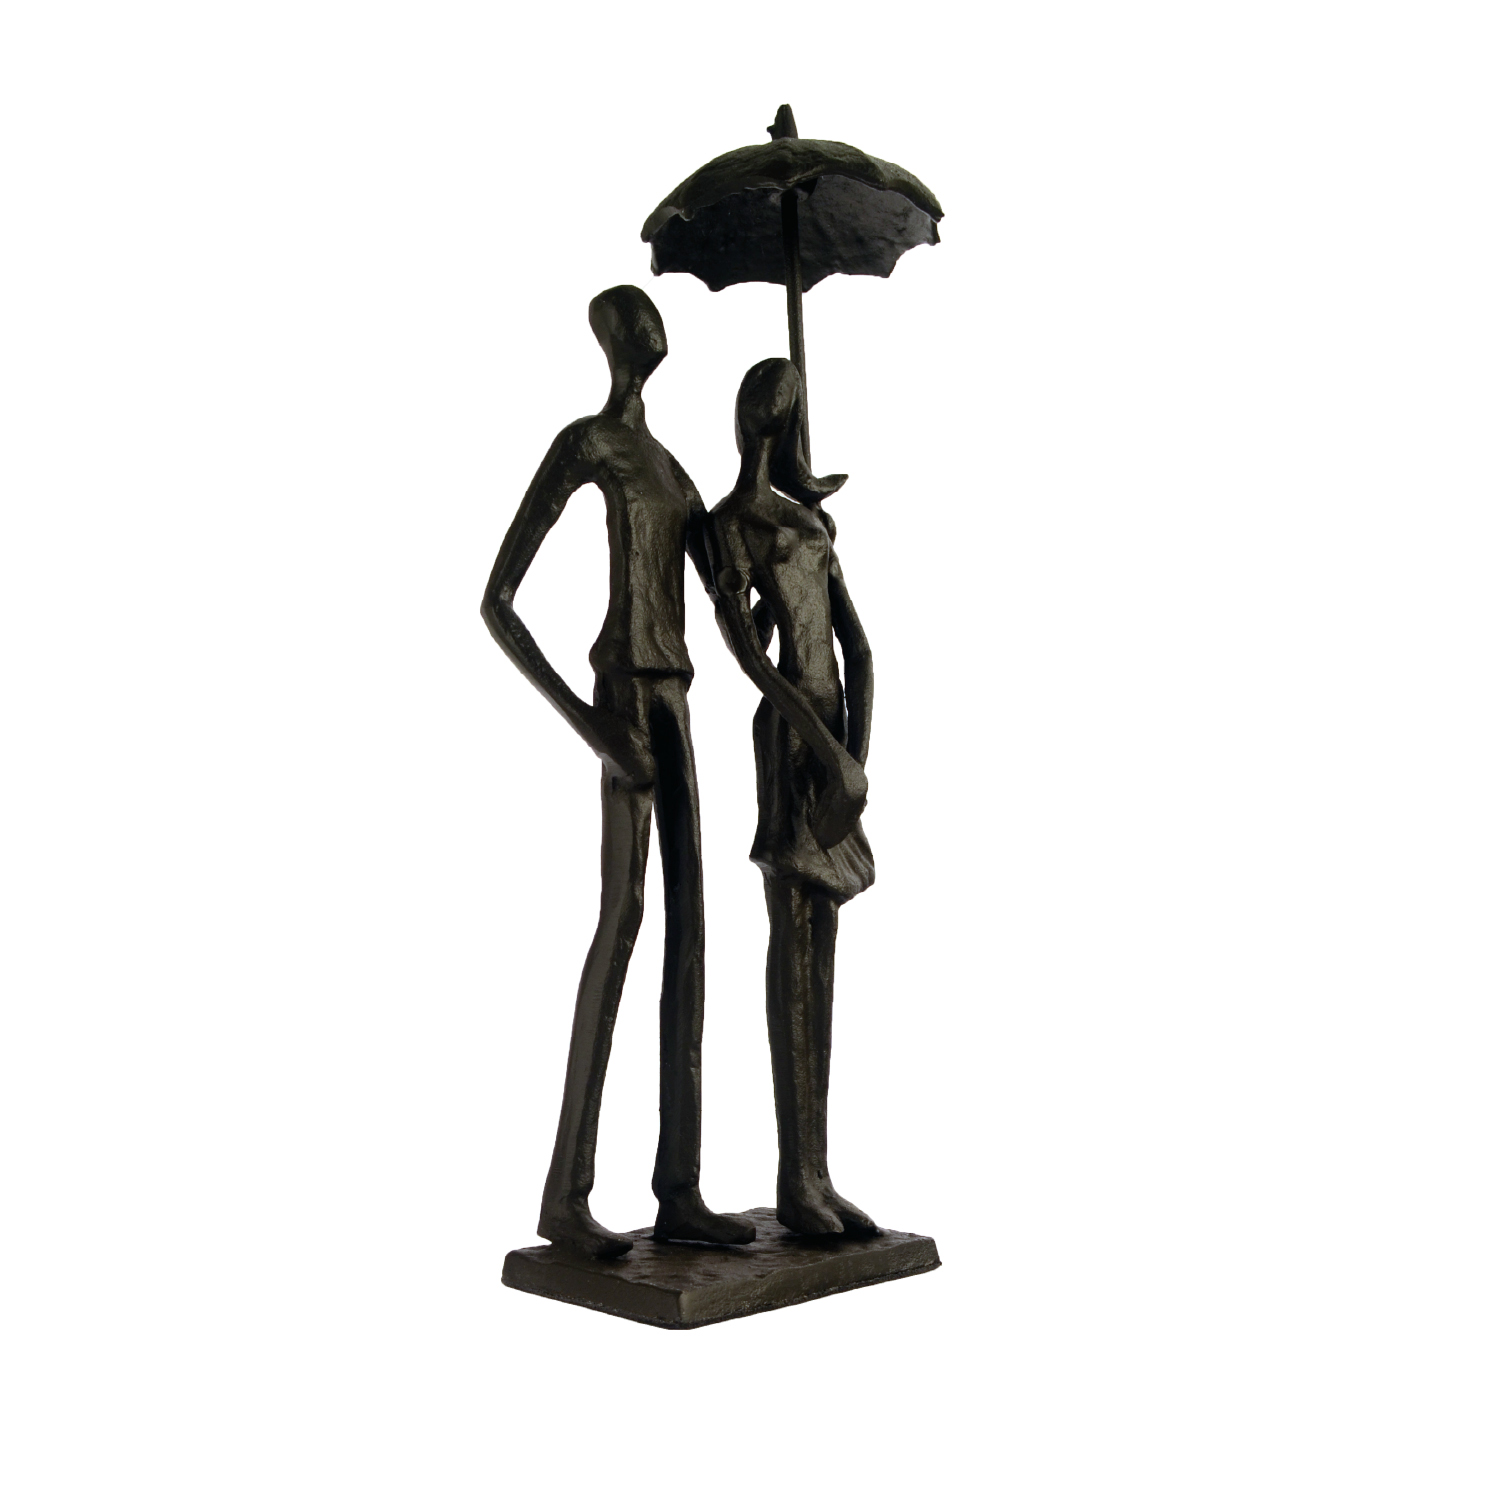 Elur Umbrella Couple Standing Iron Status Figurine 25cm in Mocha Brown - Ruby's Garden Boutique